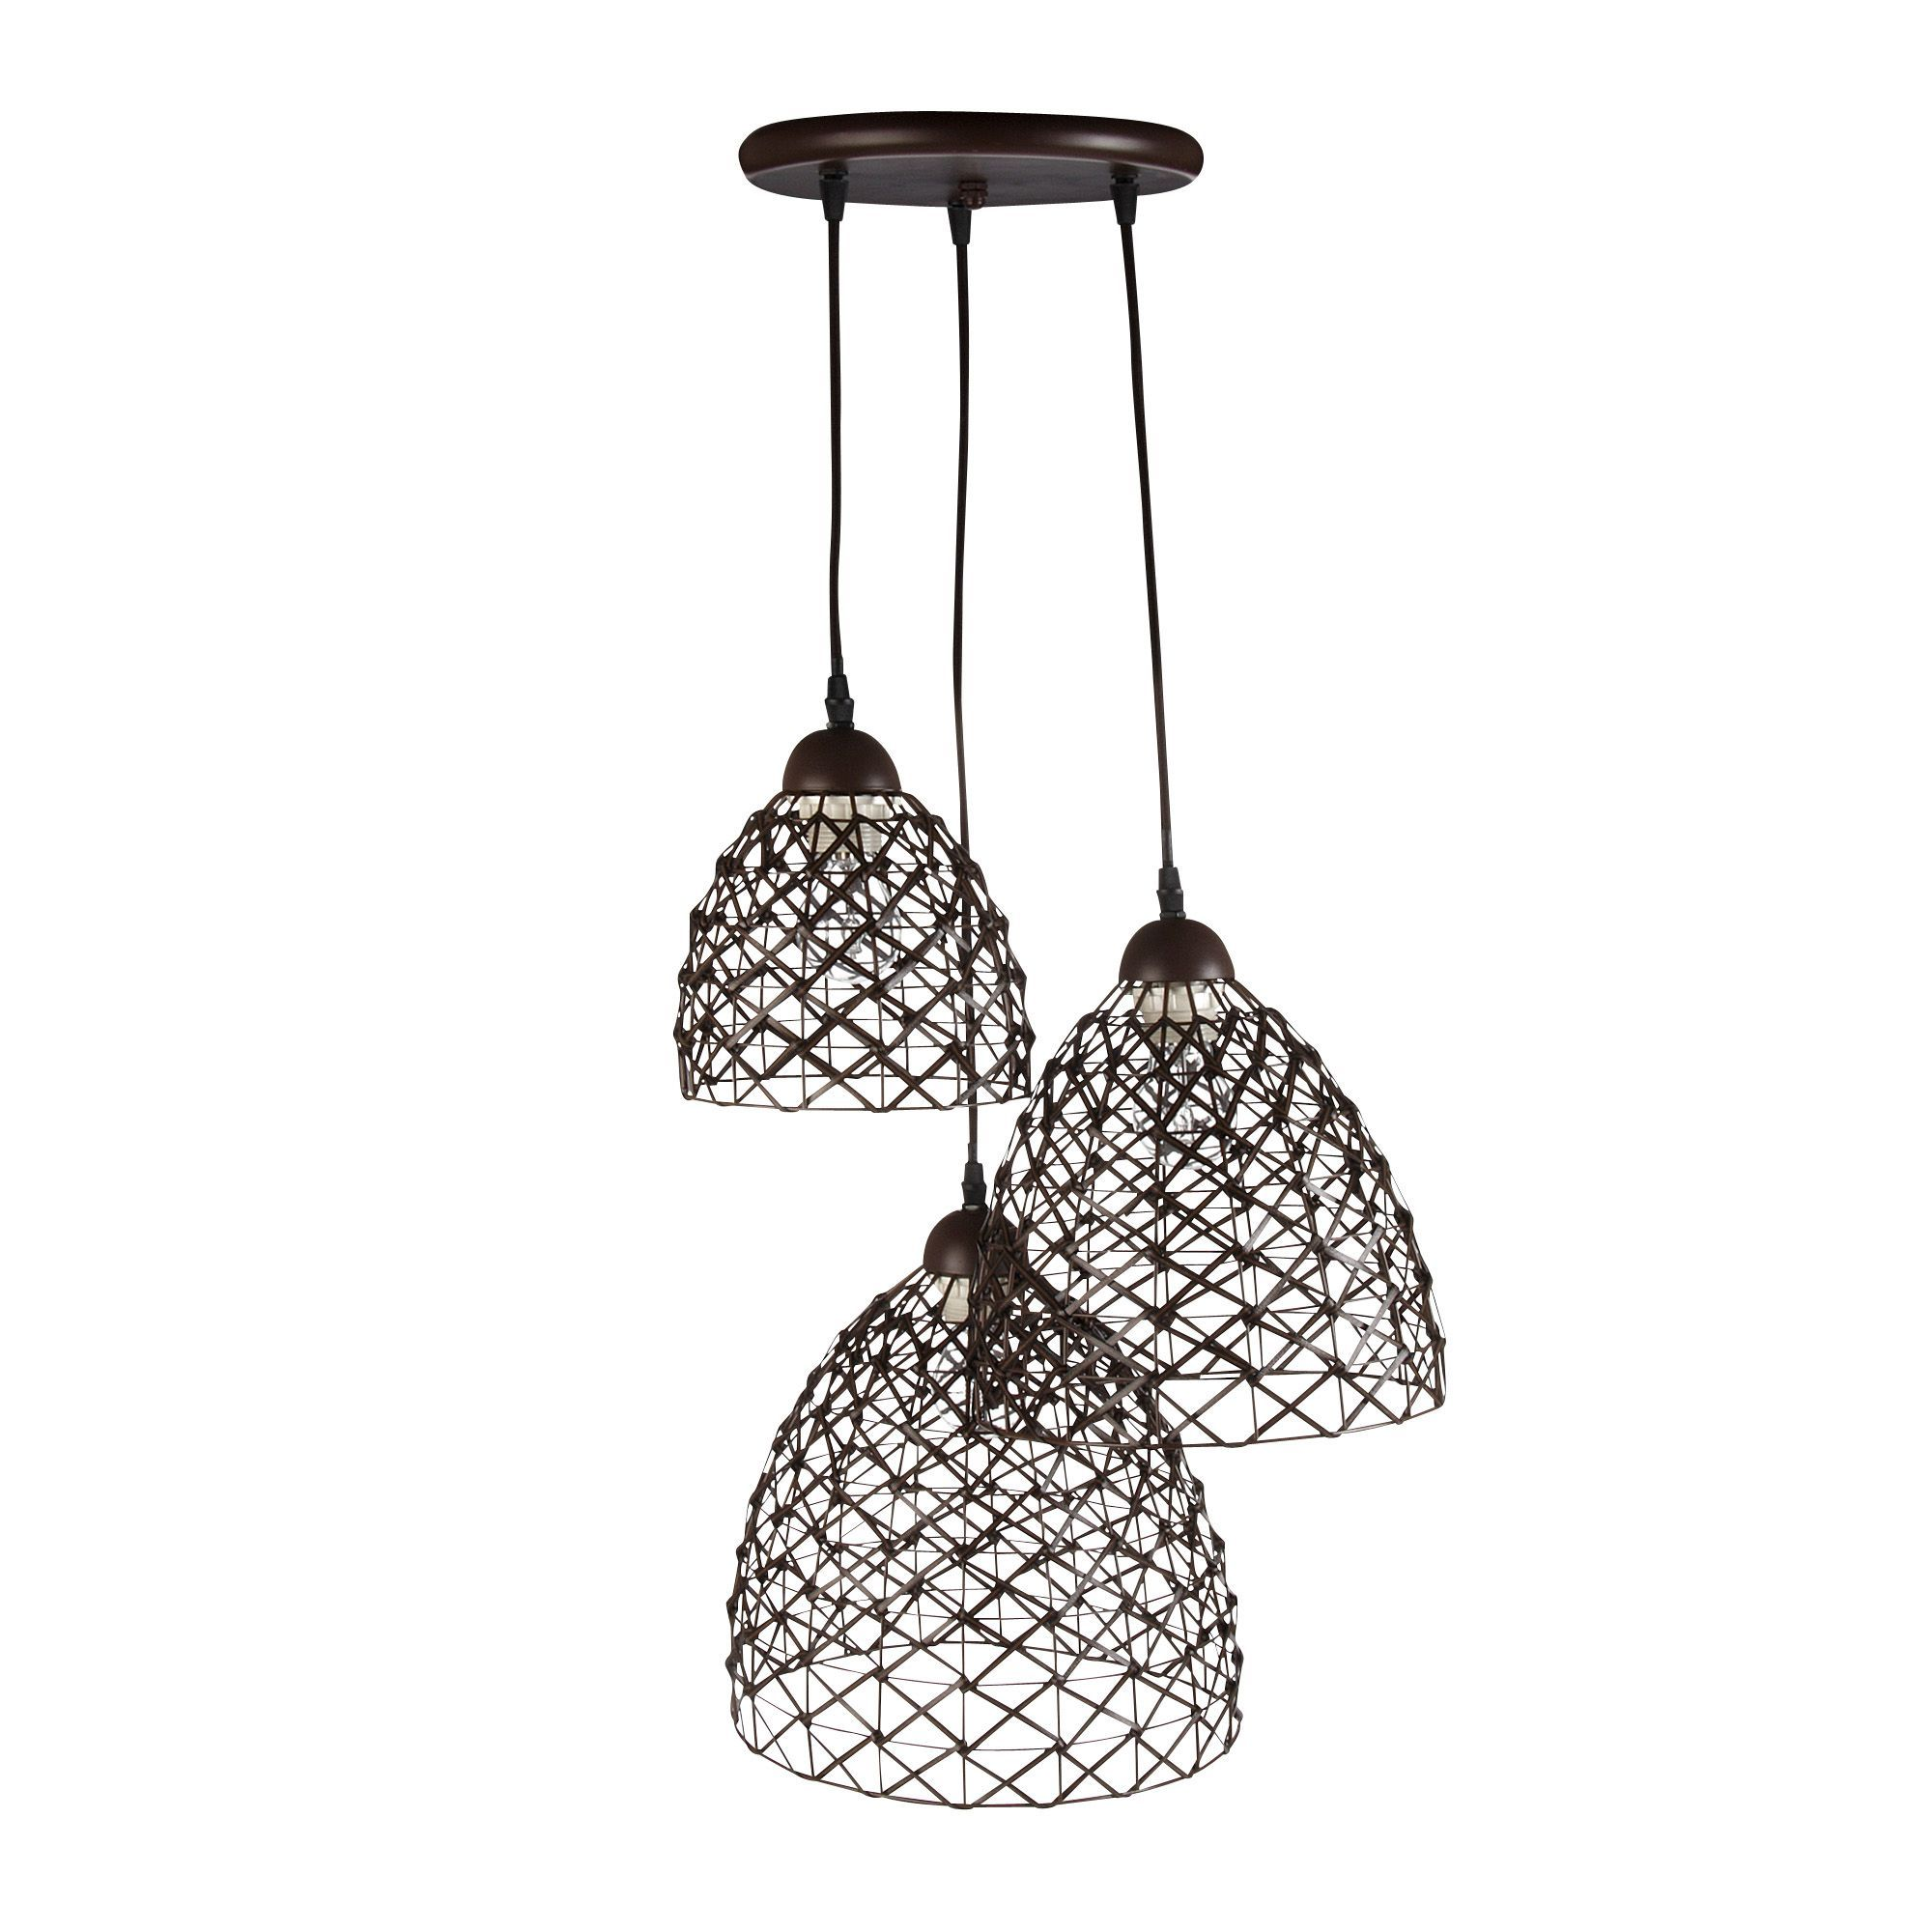 Suspension 3 lumi res chocolat chocolat naty les for Bmr luminaire interieur